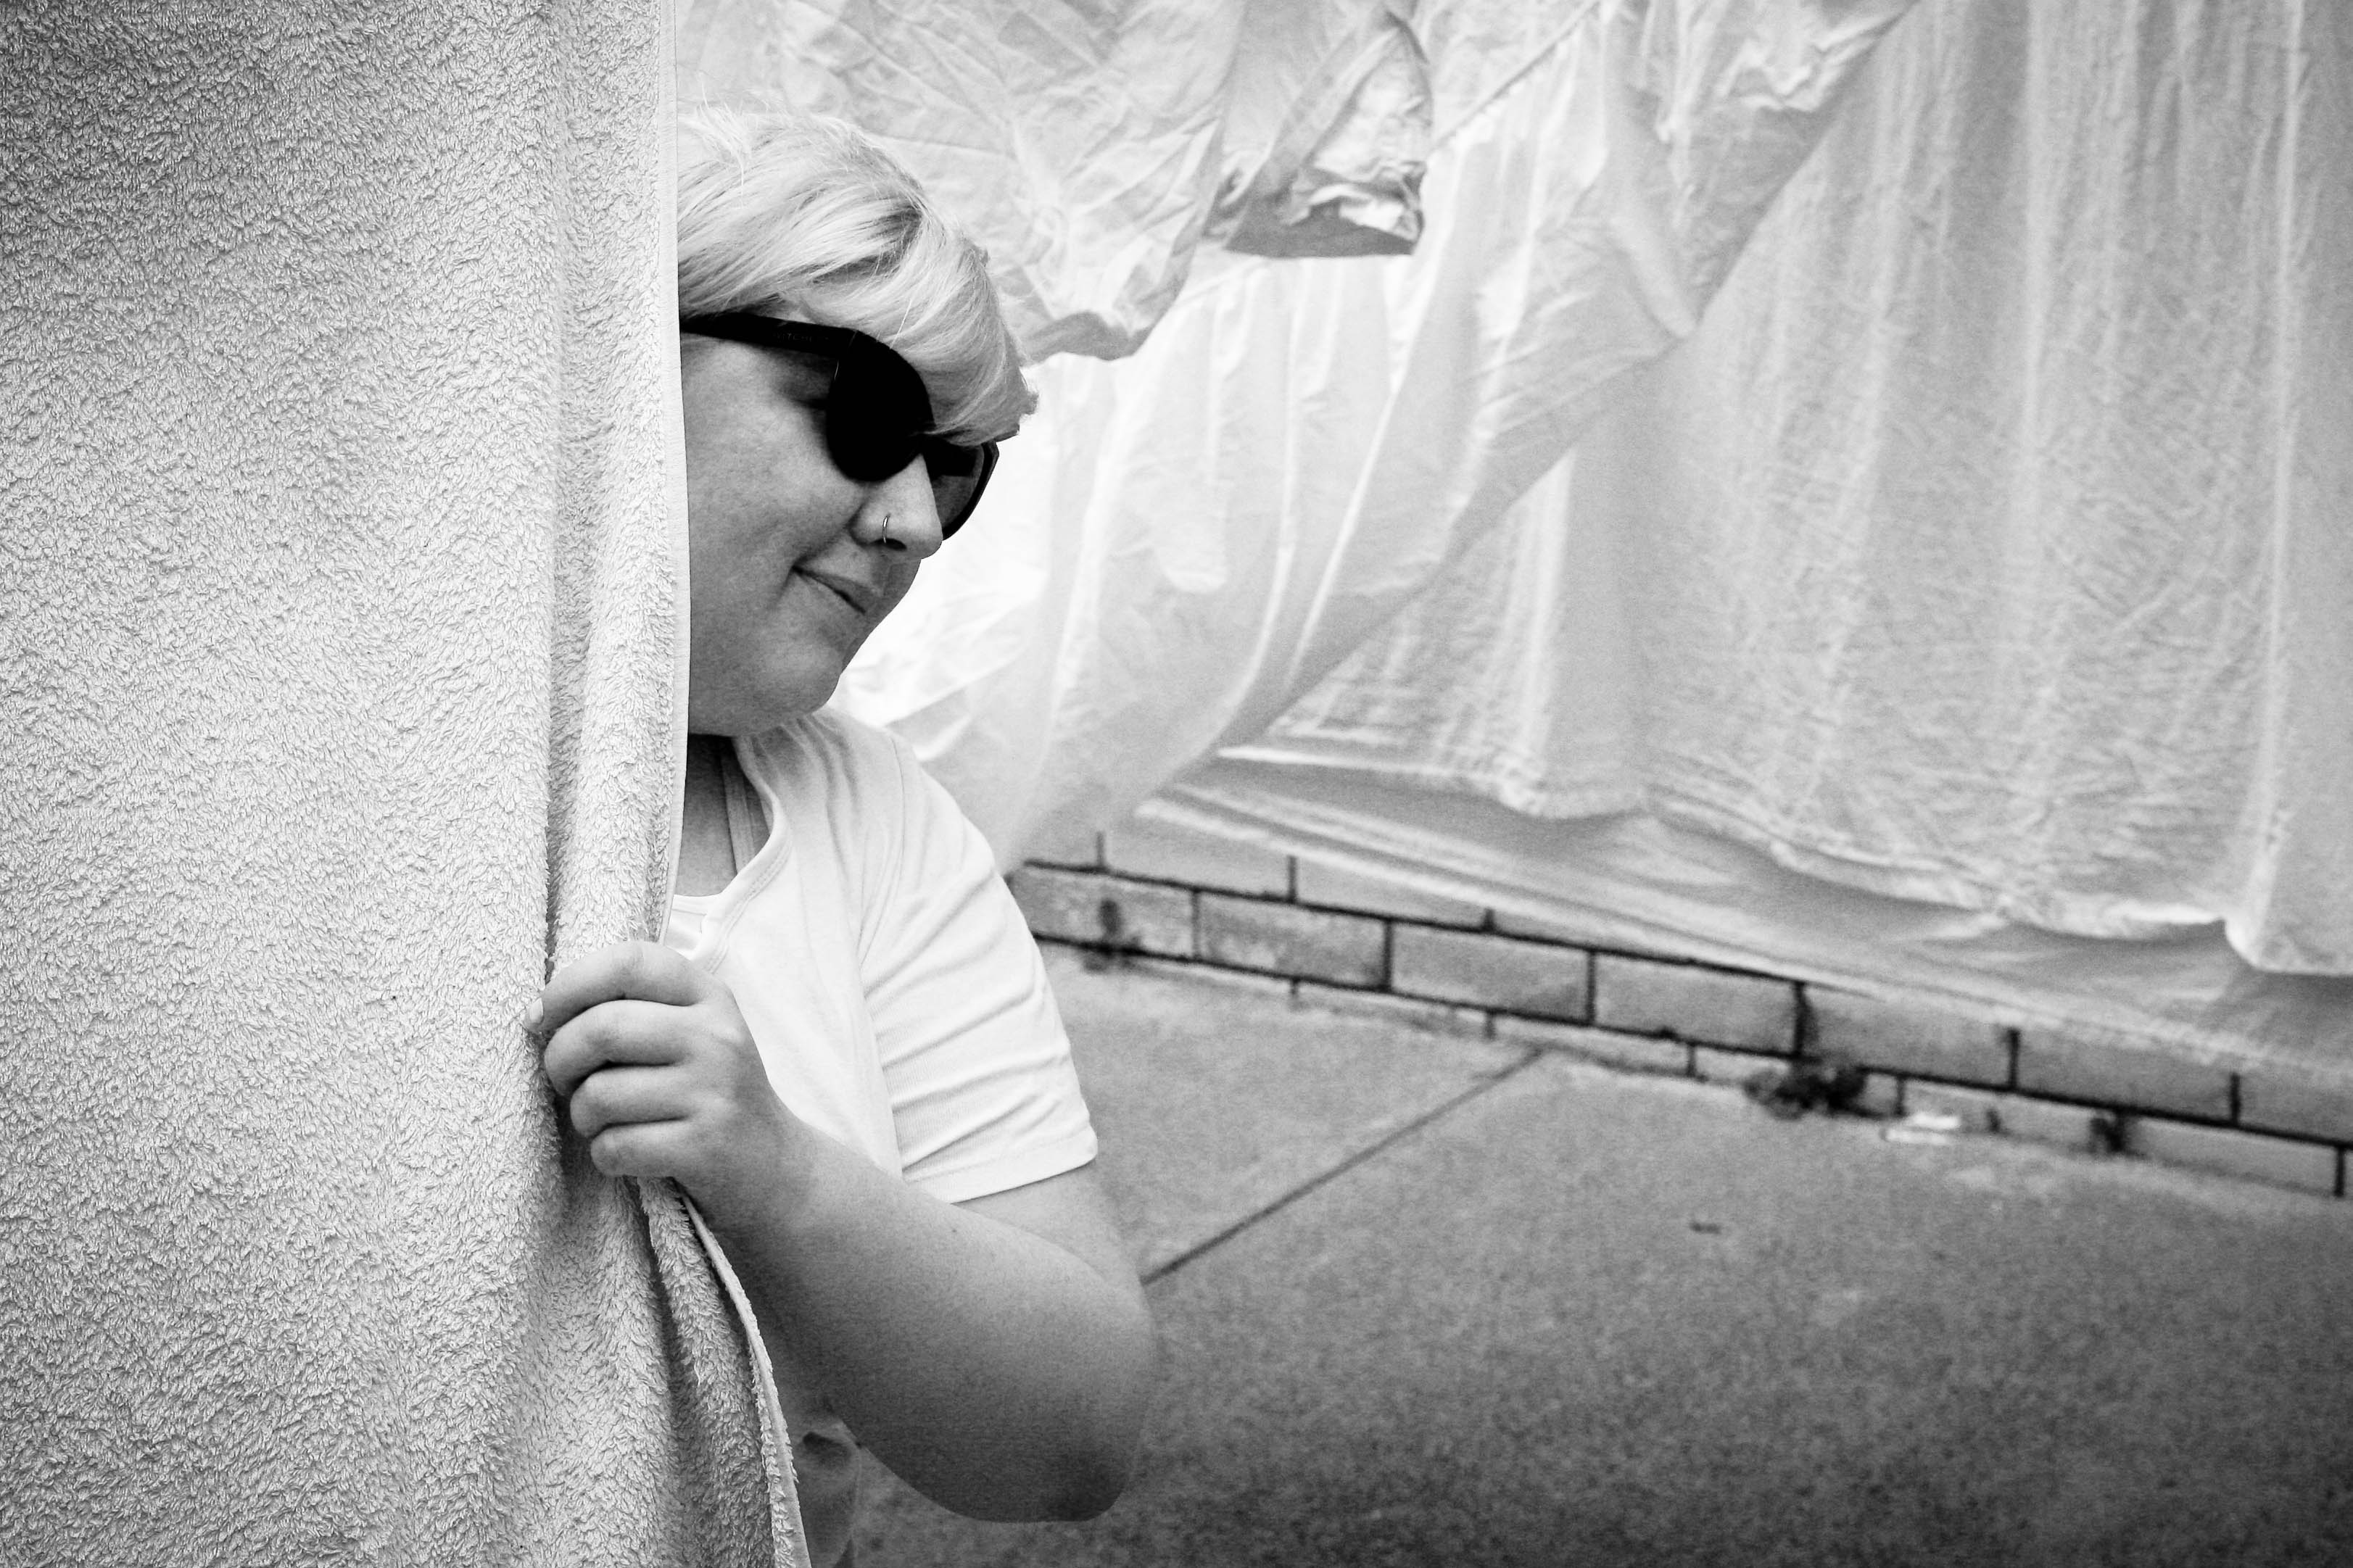 A black and white photo of me wearing sunglasses and peering around a towel on the line.